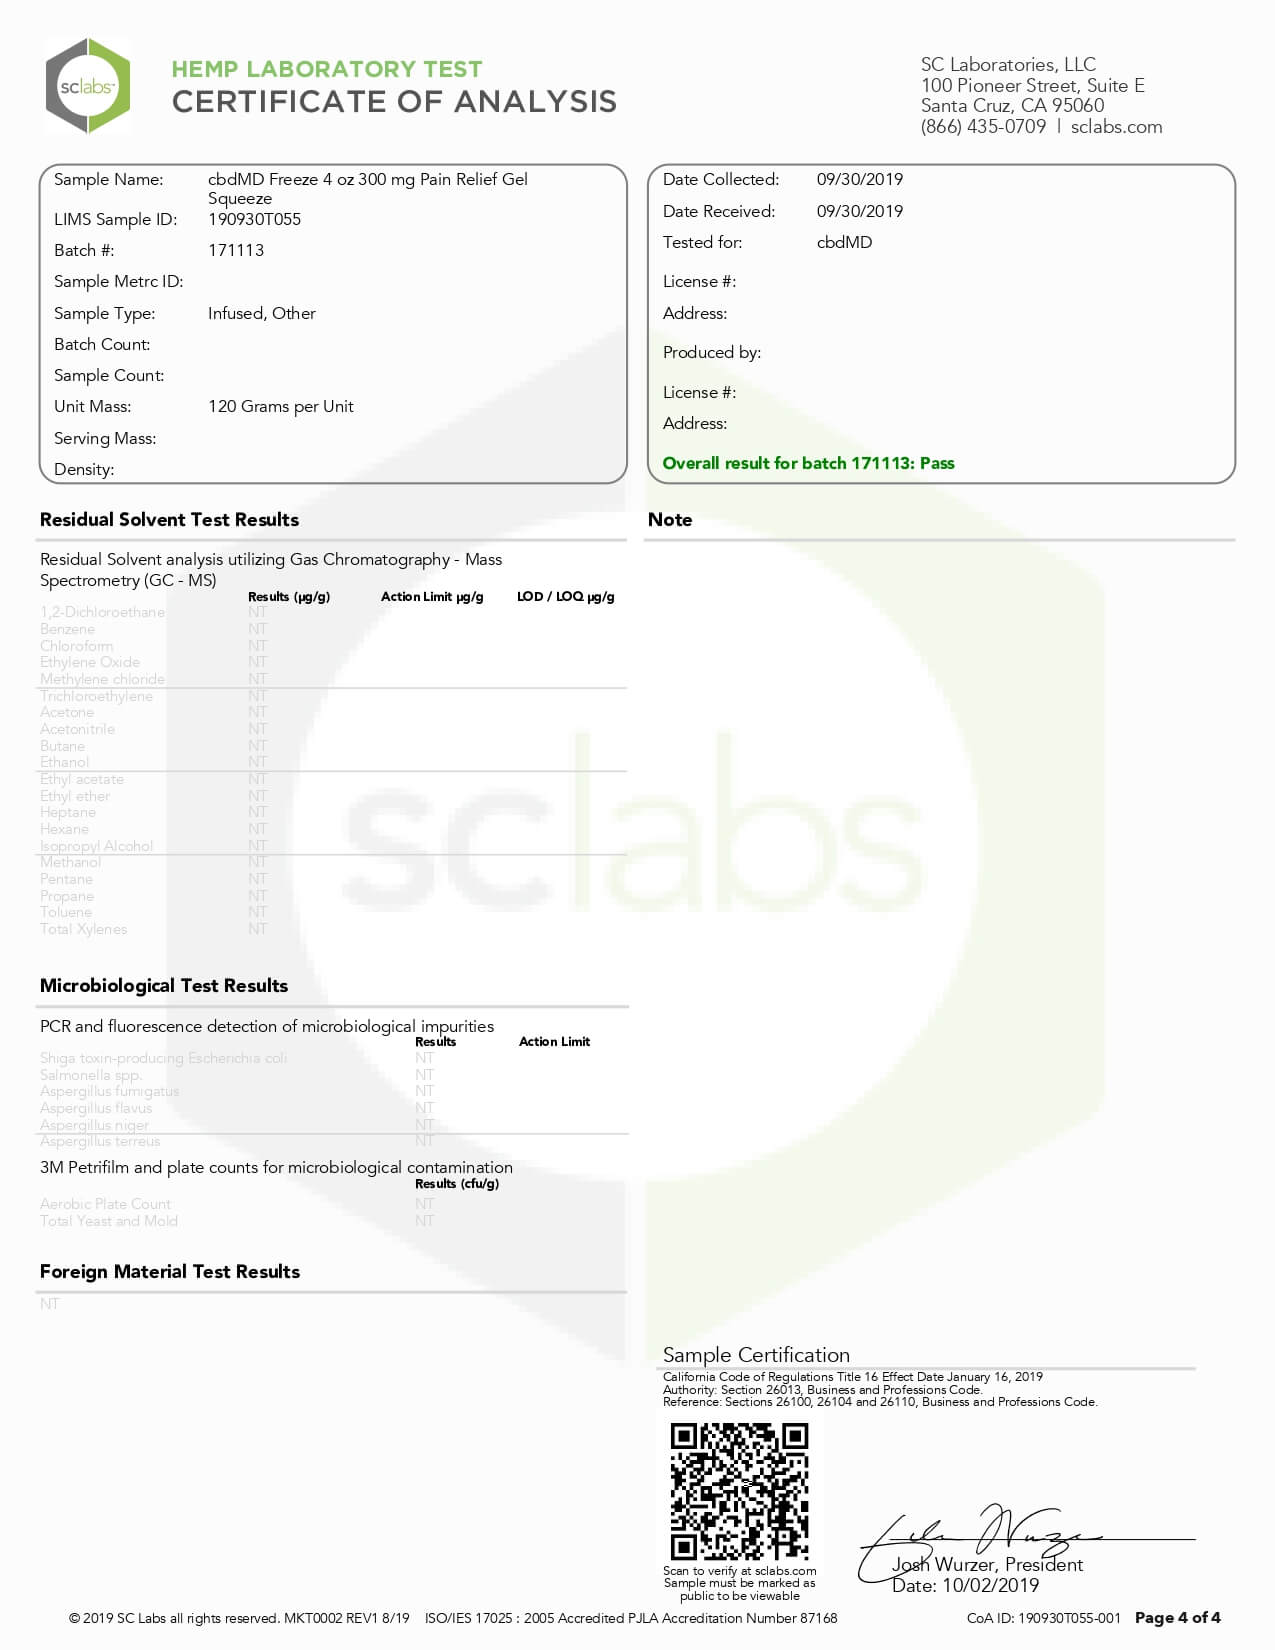 cbdMD CBD Topical Freeze Cold Therapy 4oz 300mg Lab Report